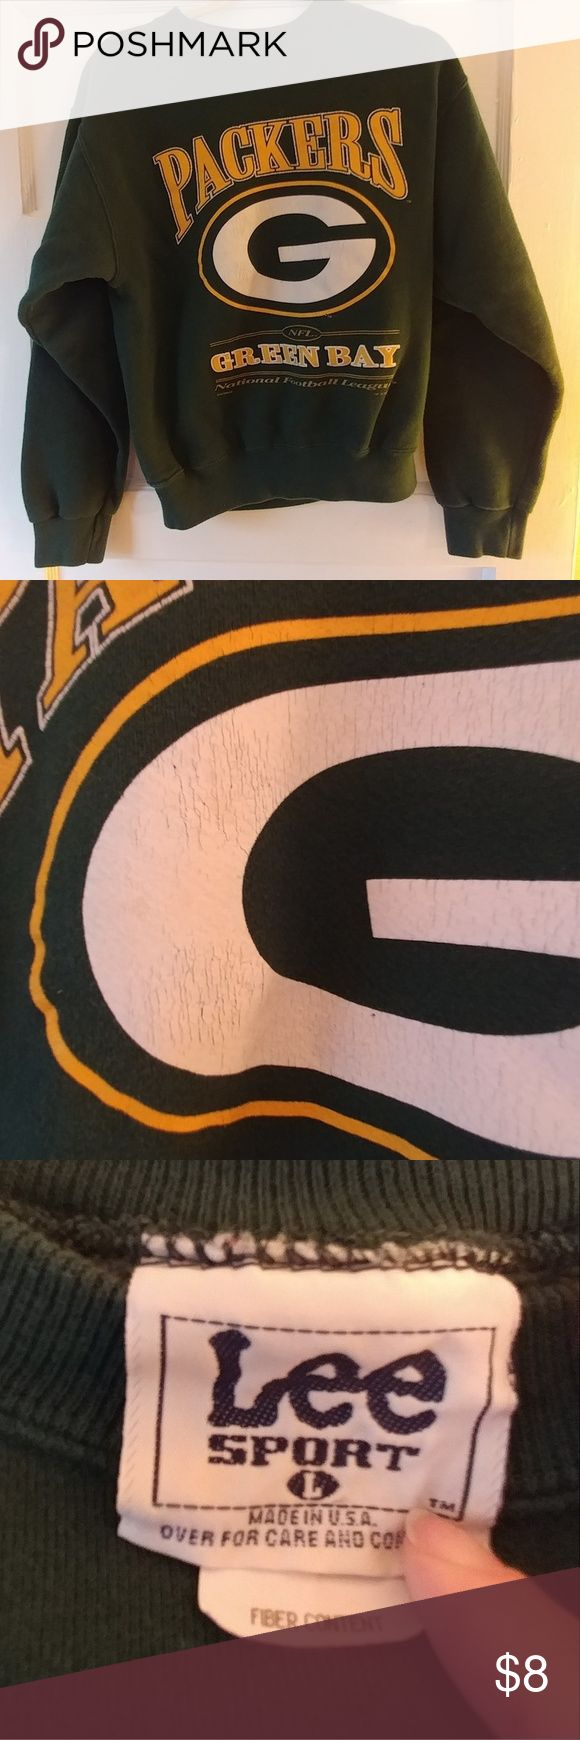 Sweatshirt Drk green sweatshirt...Green Bay Packers Lee Sport Shirts & Tops Sweatshirts & Hoodies